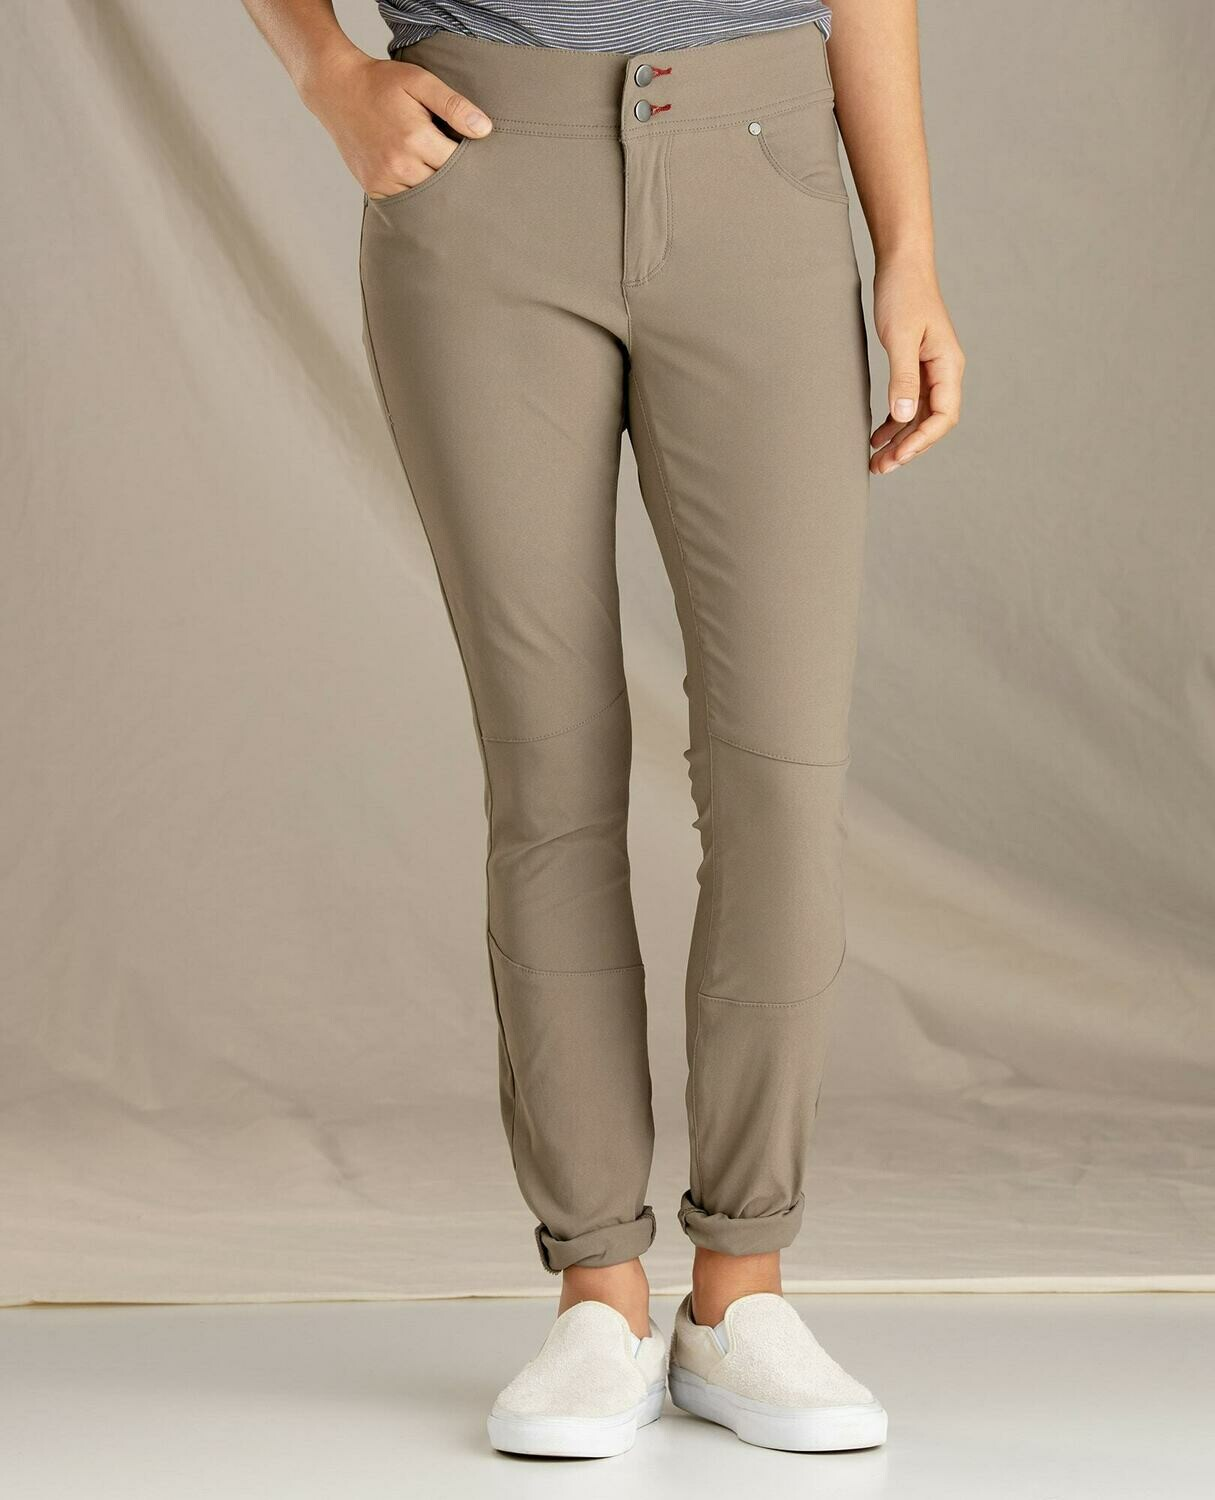 Toad and Co. Flextime Skinny Pant